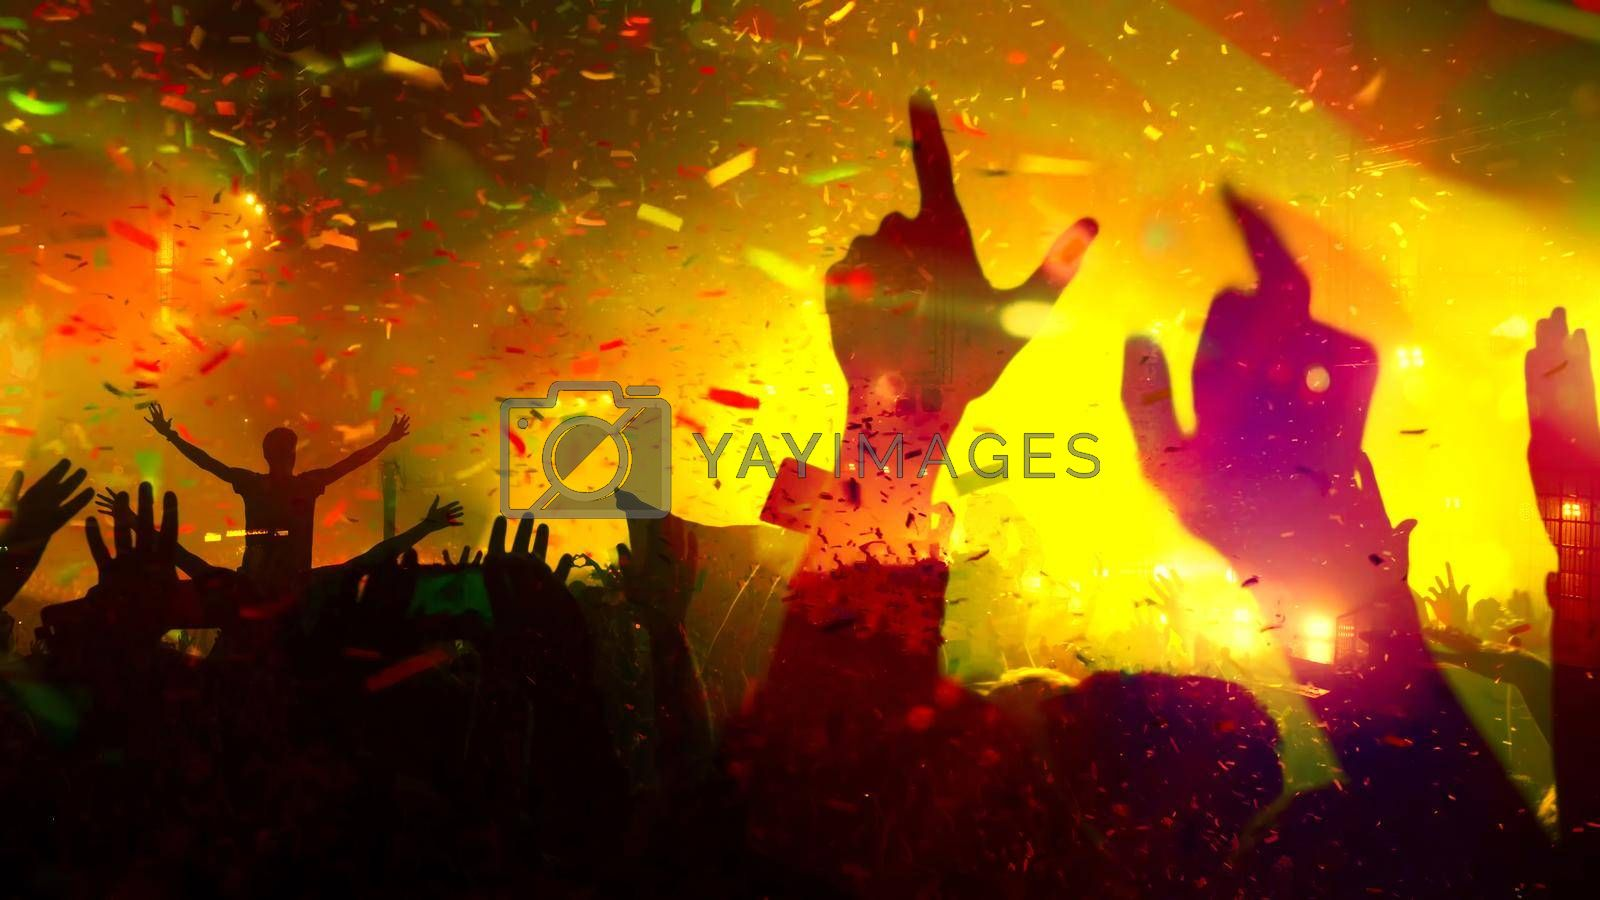 Concert Music festival and Celebrate. Party People Rock Concert. Crowd Happy and Joyful and Applauding or Clapping. Celebration party festival happiness. Blurry night club. Concert Show with DJ Music festival EDM on Stage